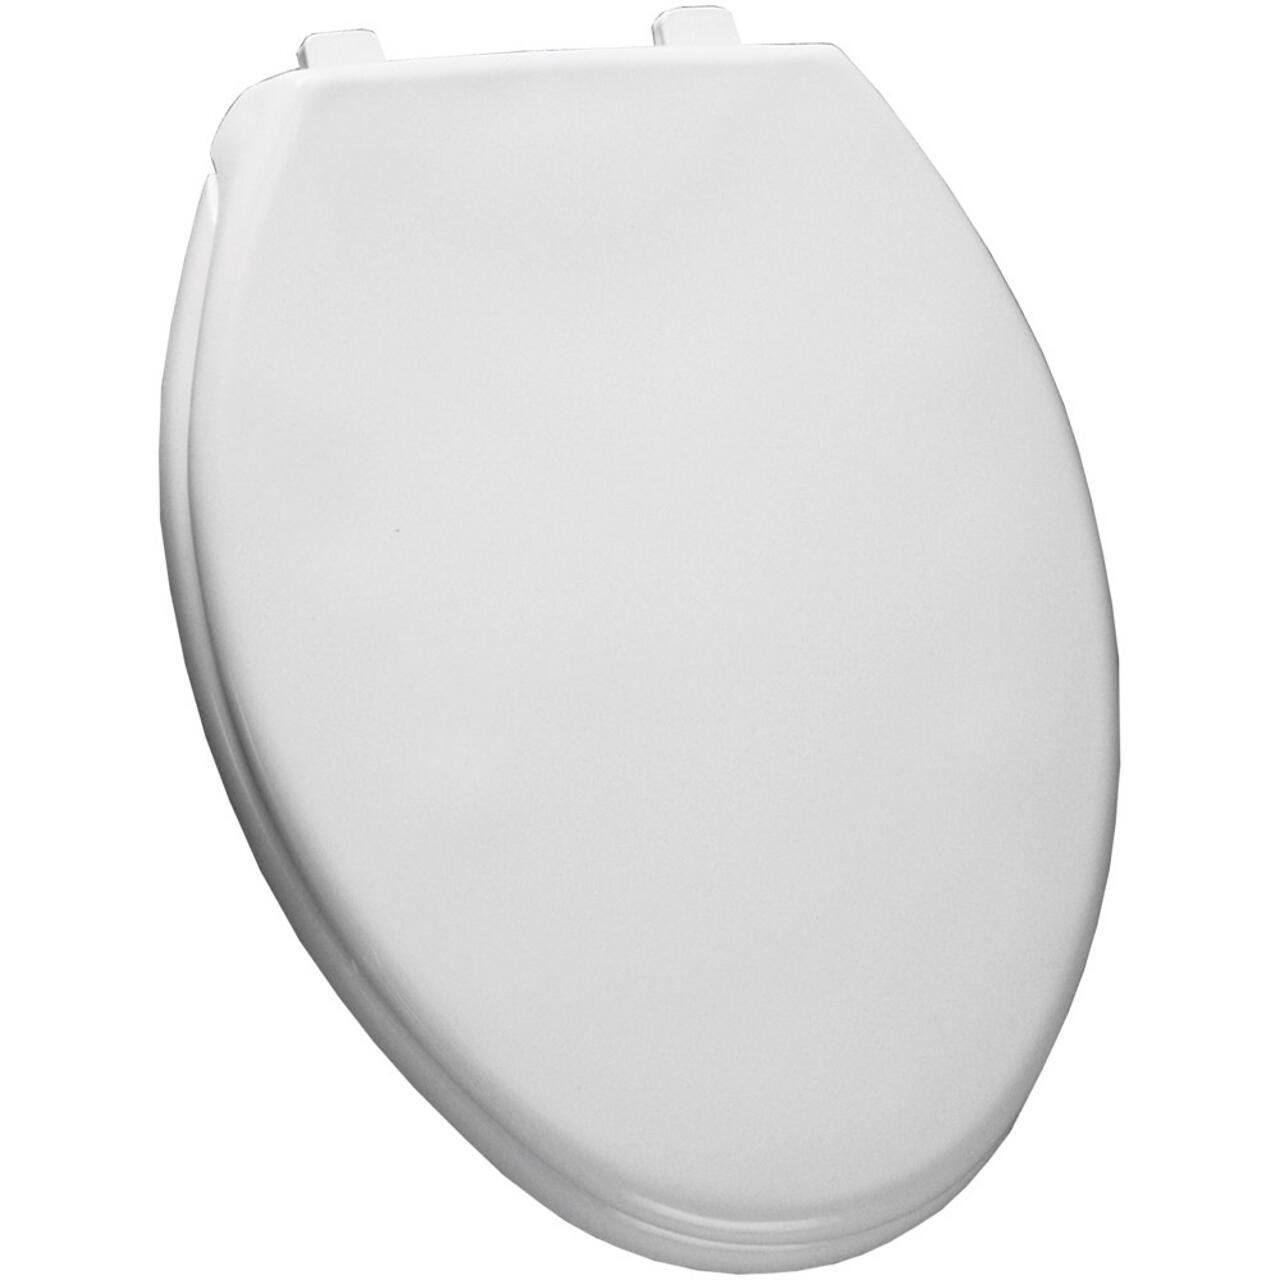 Church Bemis 380tca 000 Elongated Toilet Seat With Cover